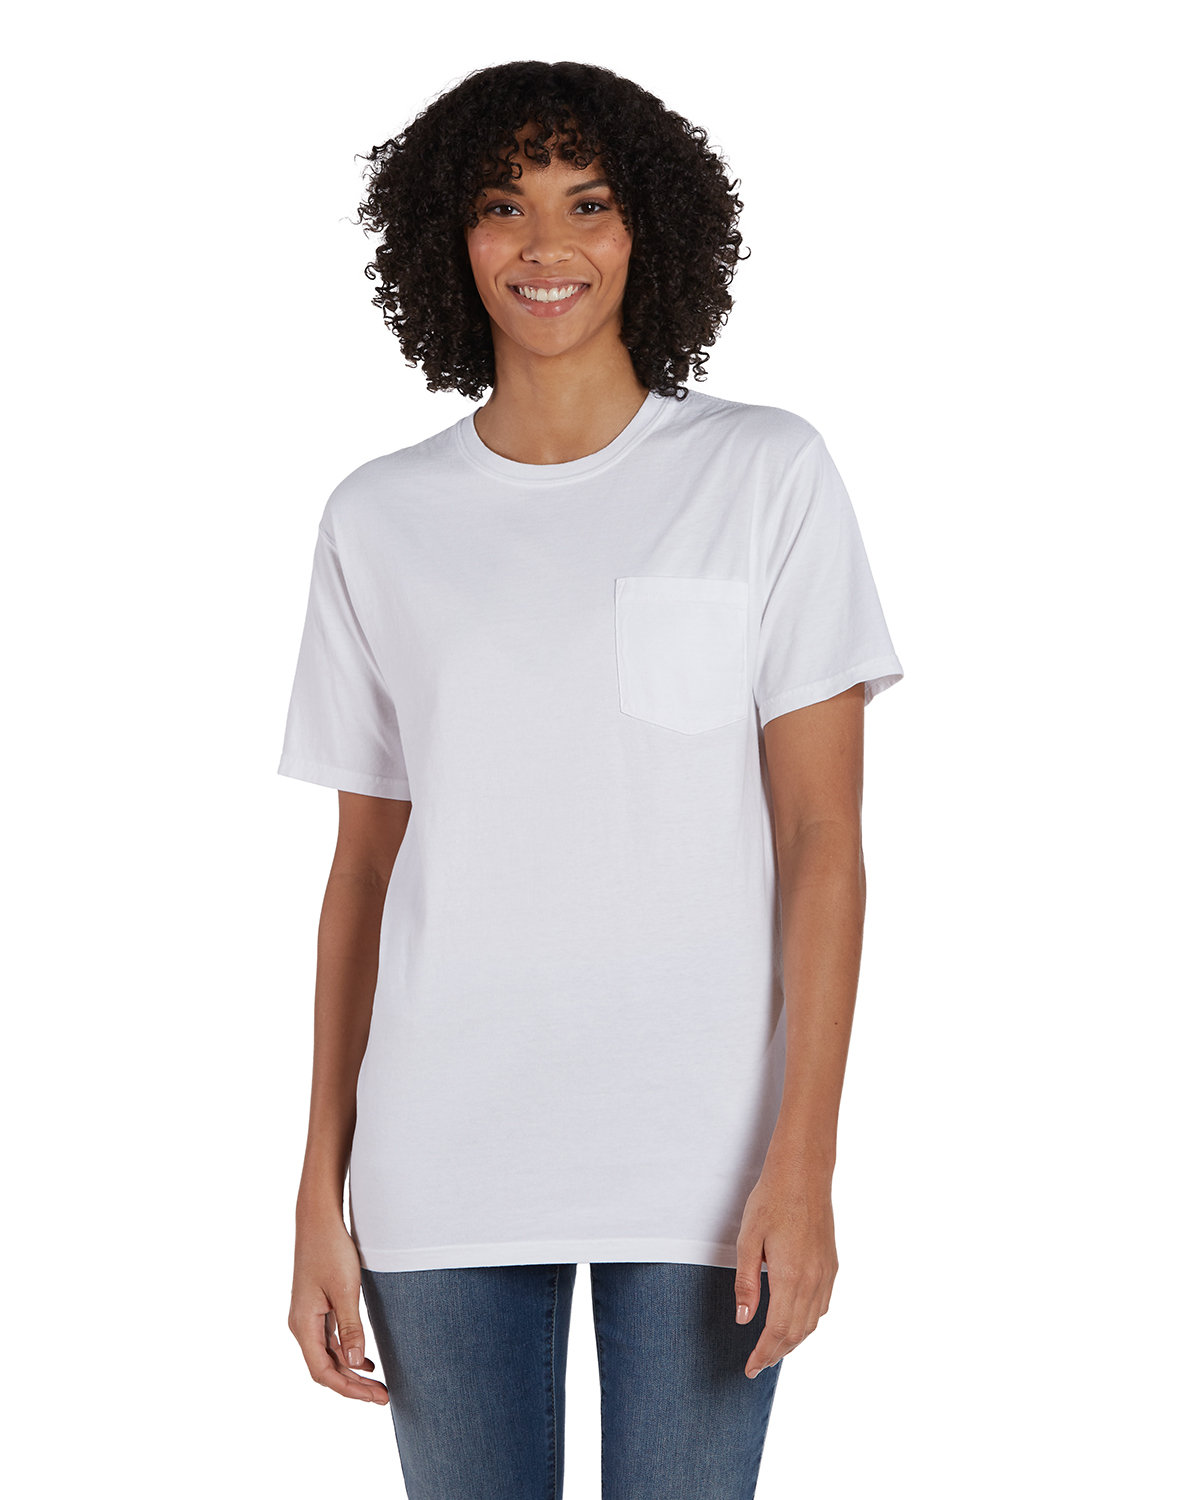 ComfortWash by Hanes Unisex 5.5 oz., 100% Ringspun Cotton Garment-Dyed T-Shirt with Pocket WHITE